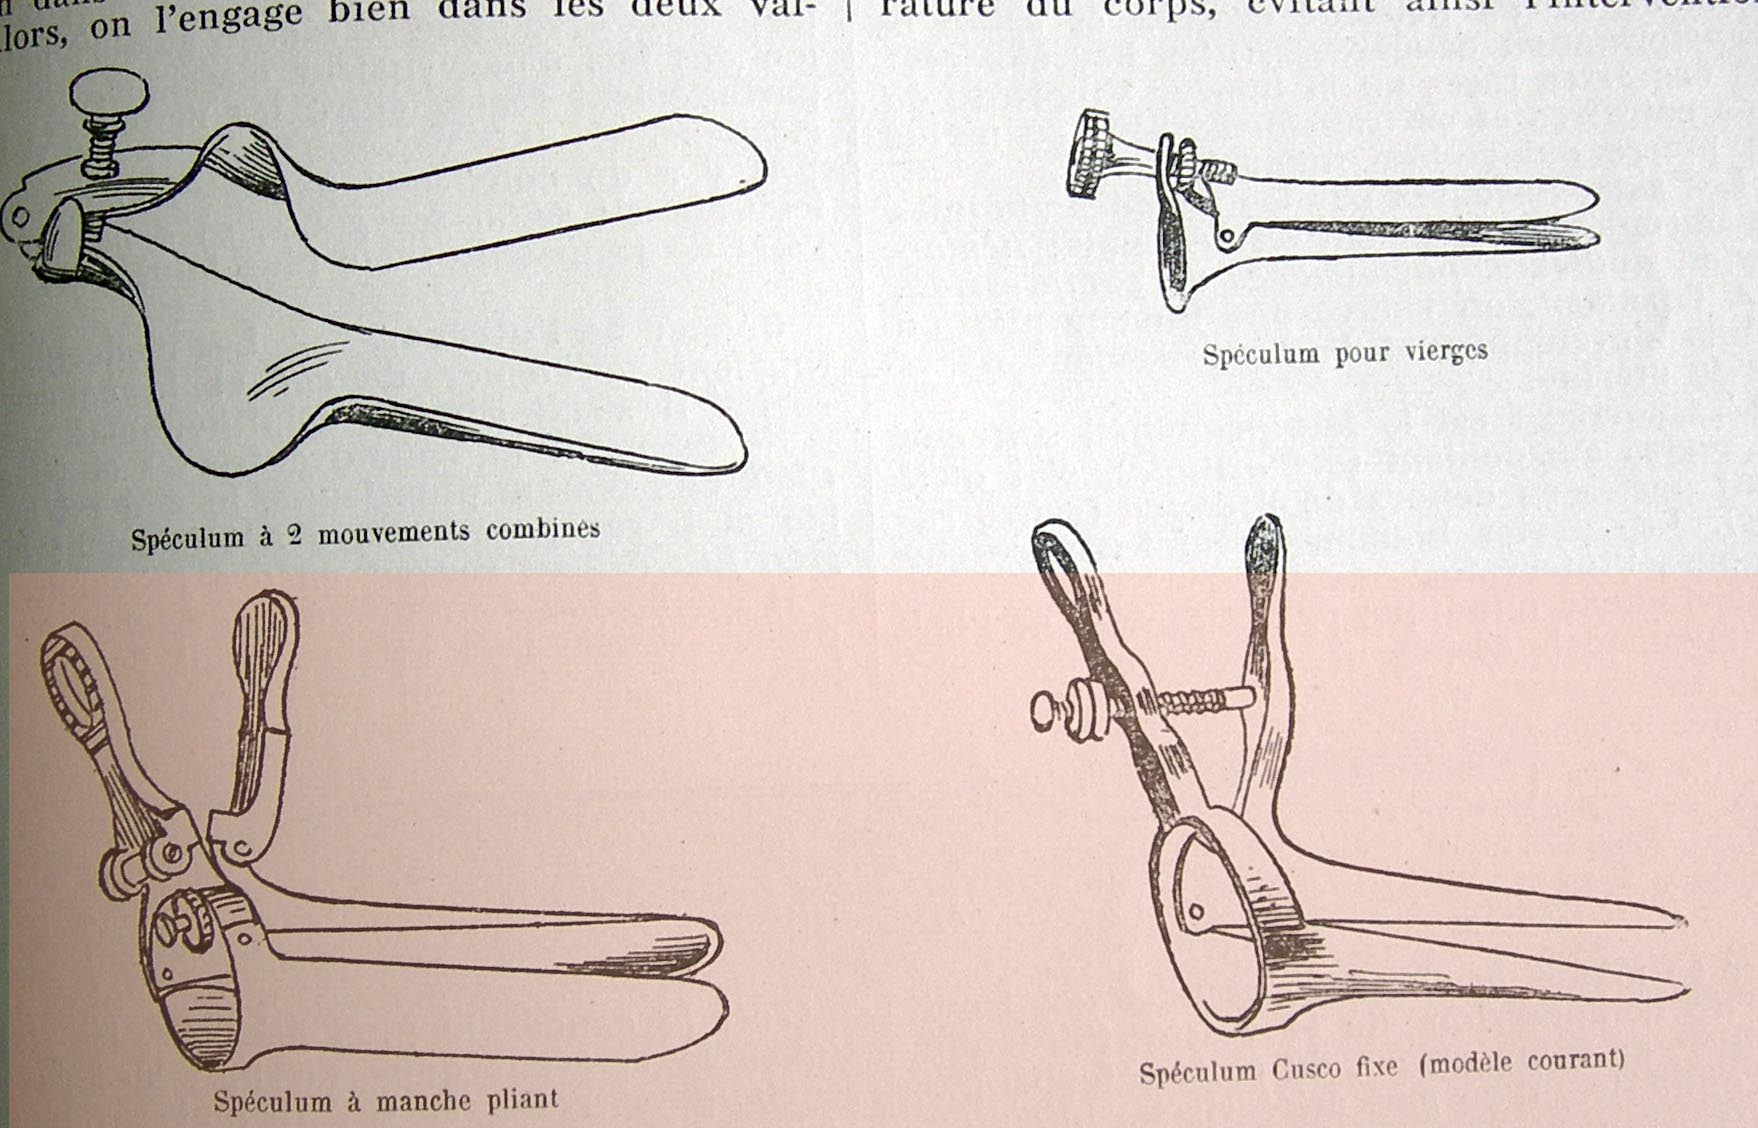 Cusco's vaginal speculum catalog 1